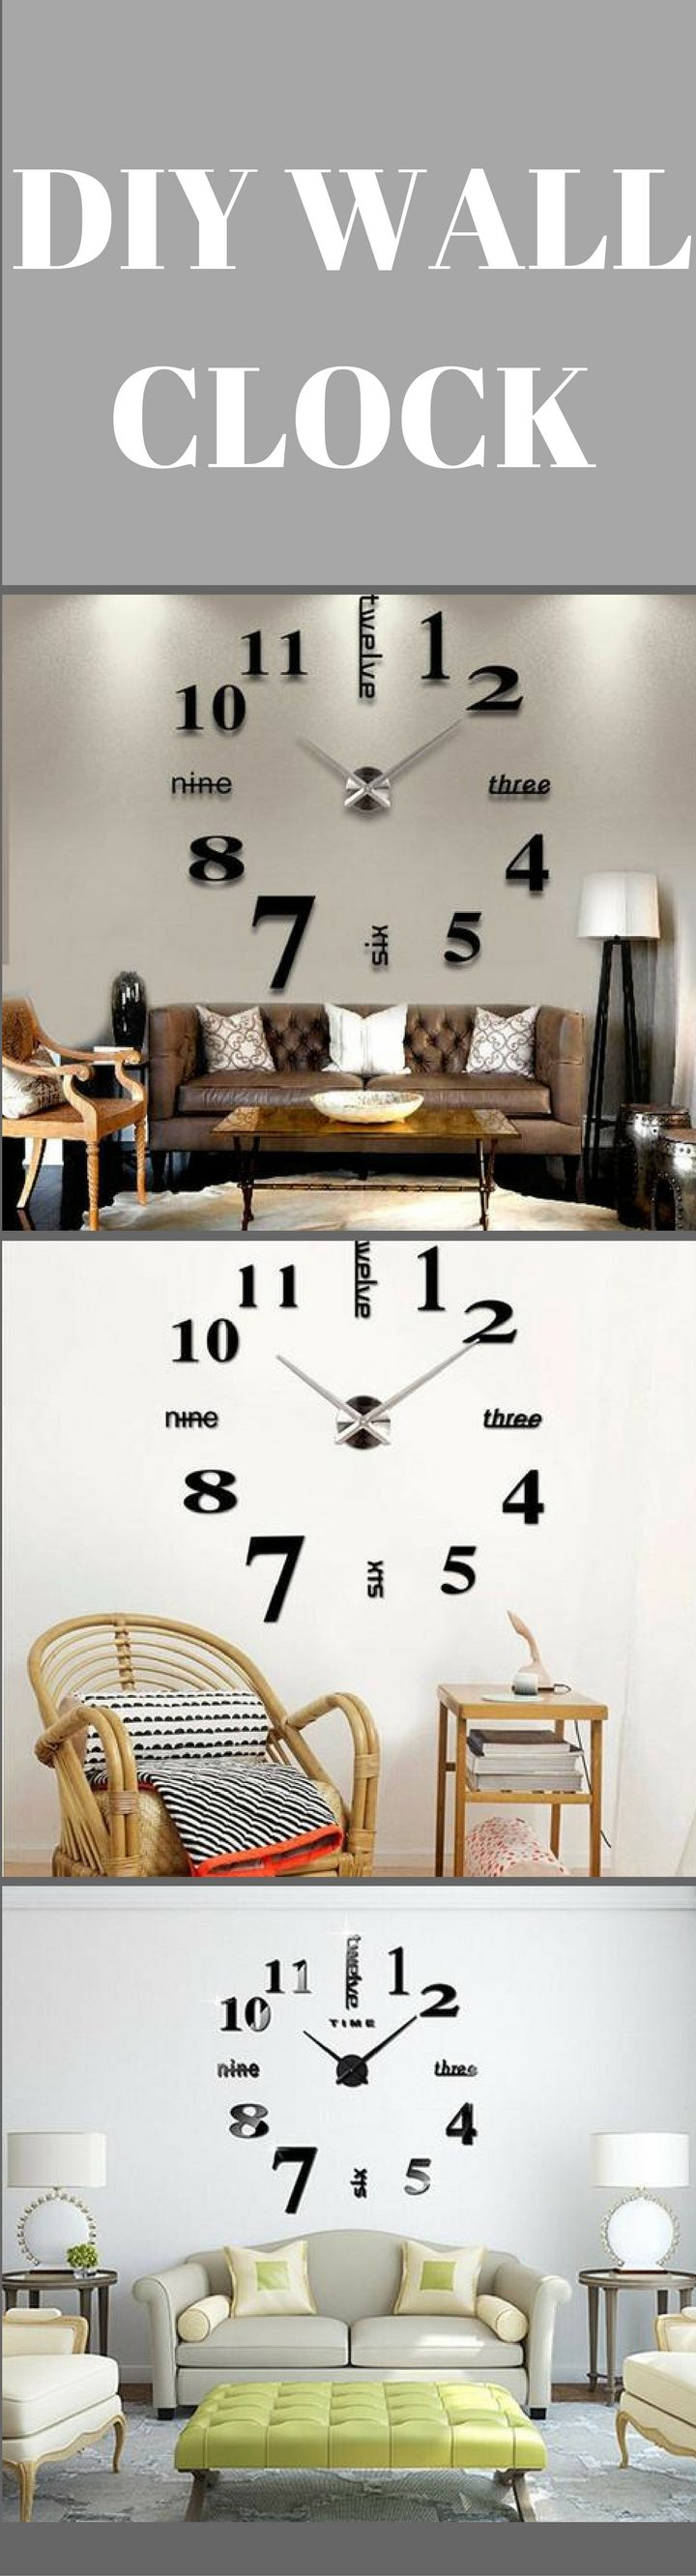 25 unique clock movements ideas on pinterest clocks the clocks buy 3d diy large wall clock black at marketplacefinds for only 2699 amipublicfo Images